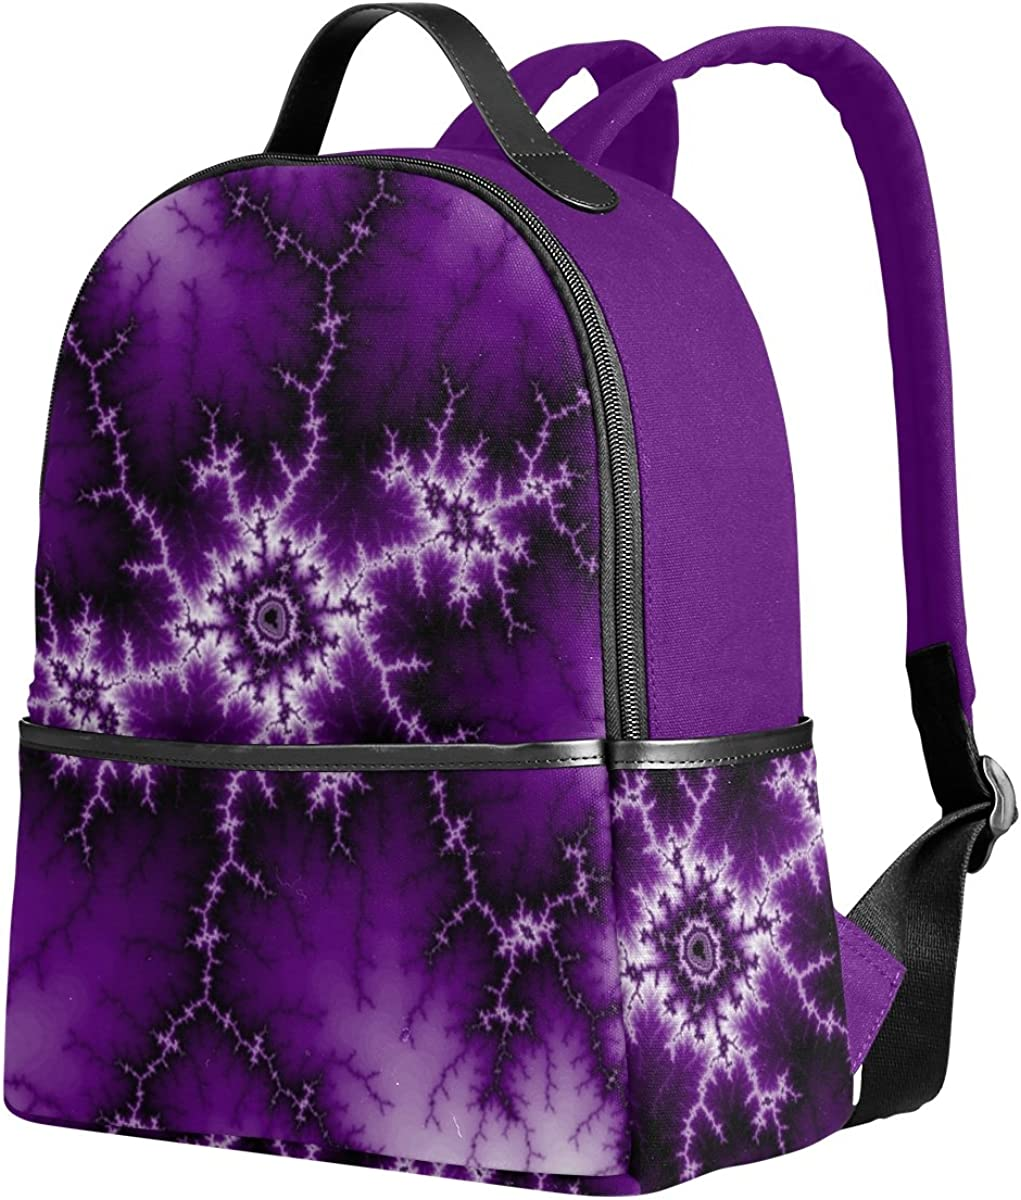 Mr.Weng Ganglia Printed Canvas Backpack For Girl and Children